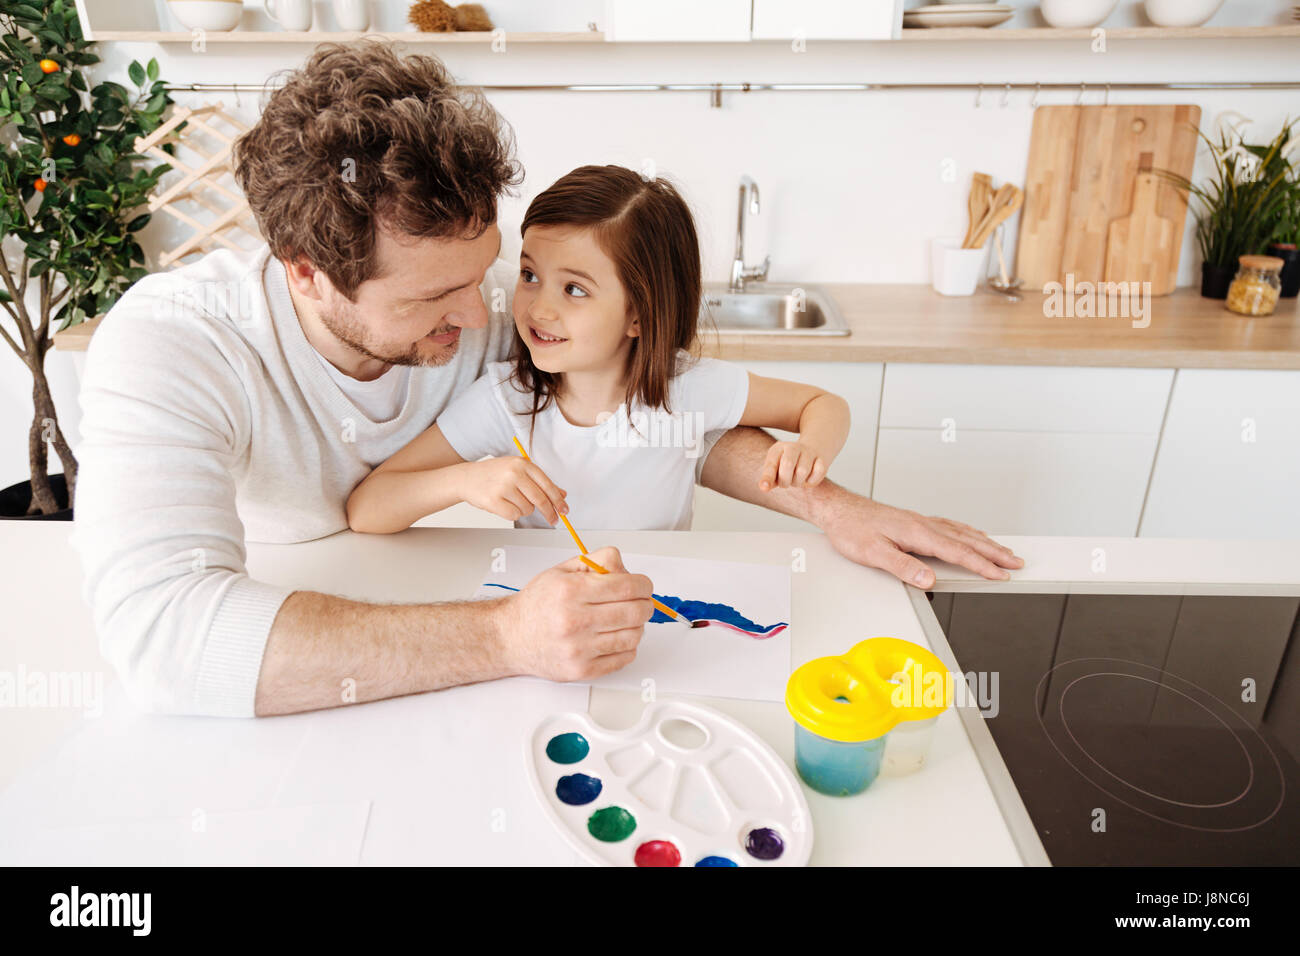 Family co-creation. Merry loving single-parent family bonding to each other while painting together one picture - Stock Image